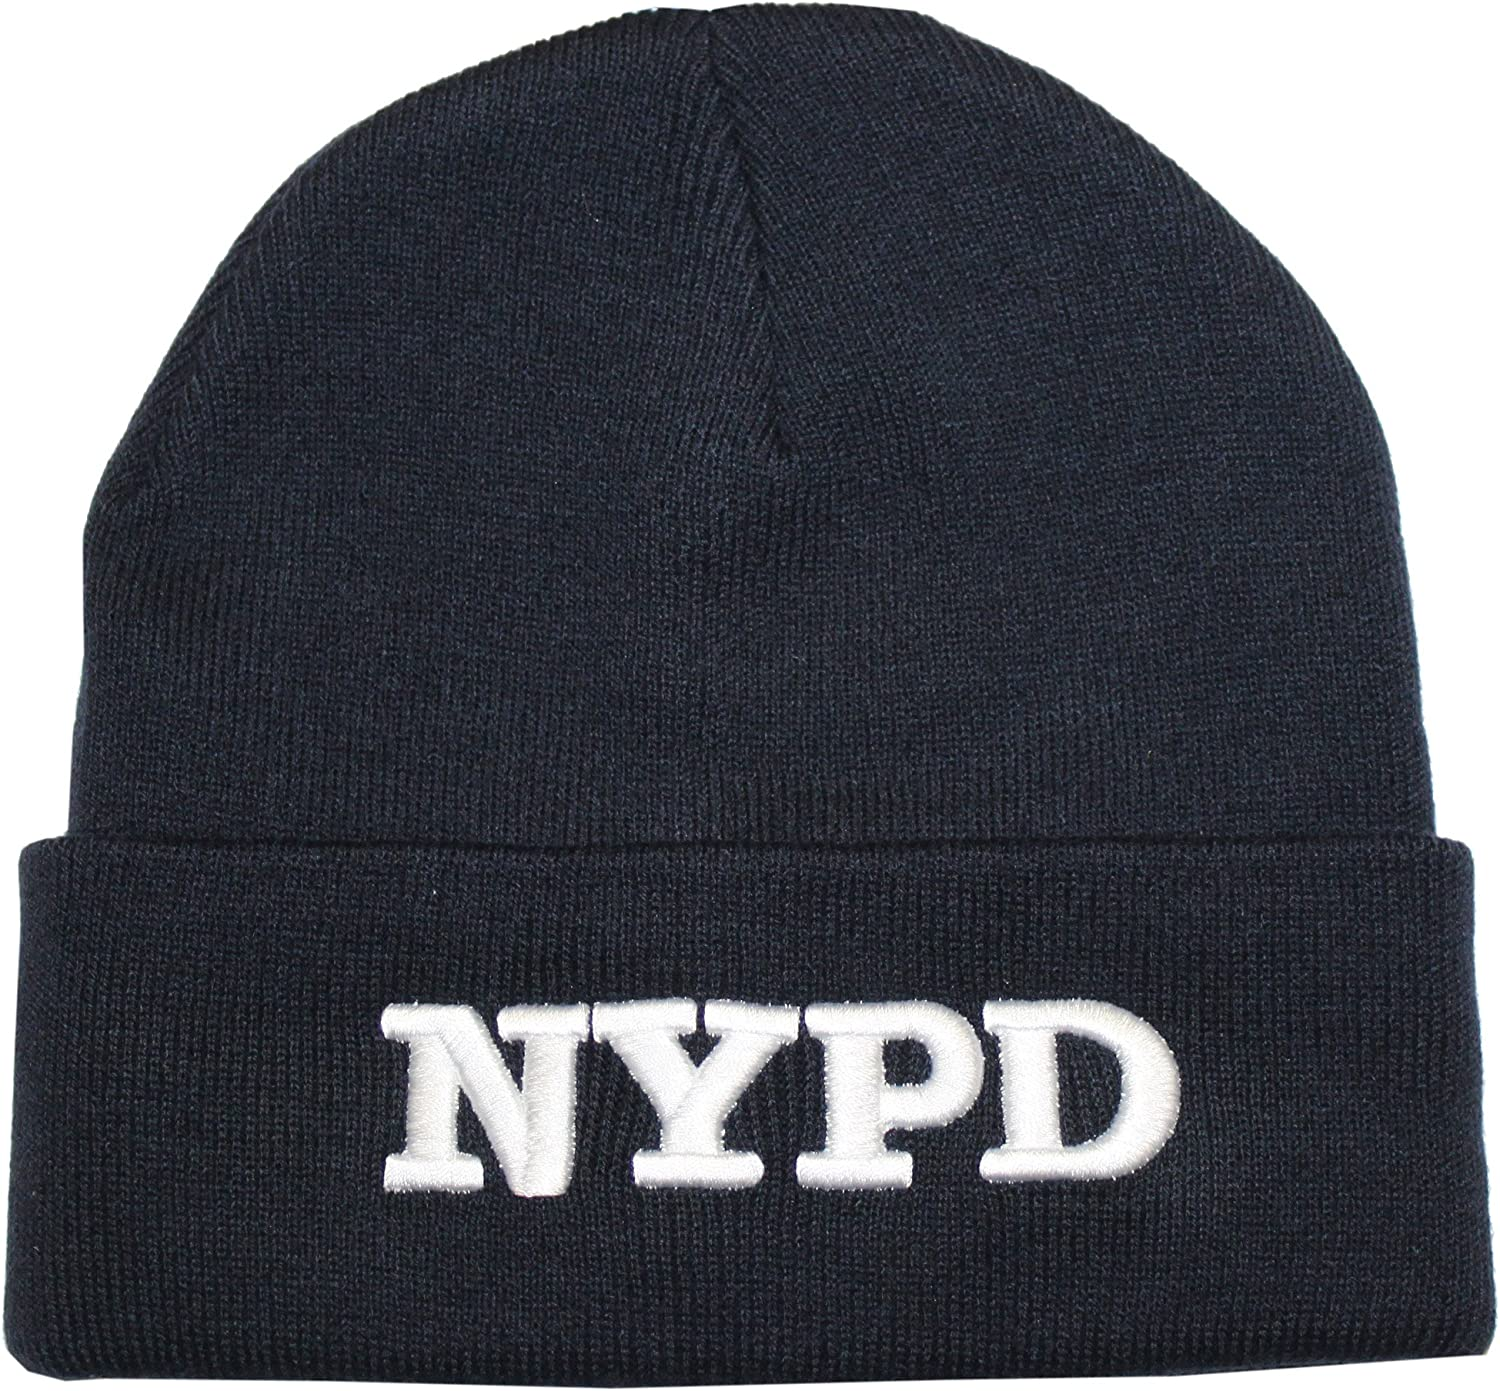 NYPD Winter Hat Police Badge New York Police Department Black /& Gold One Size